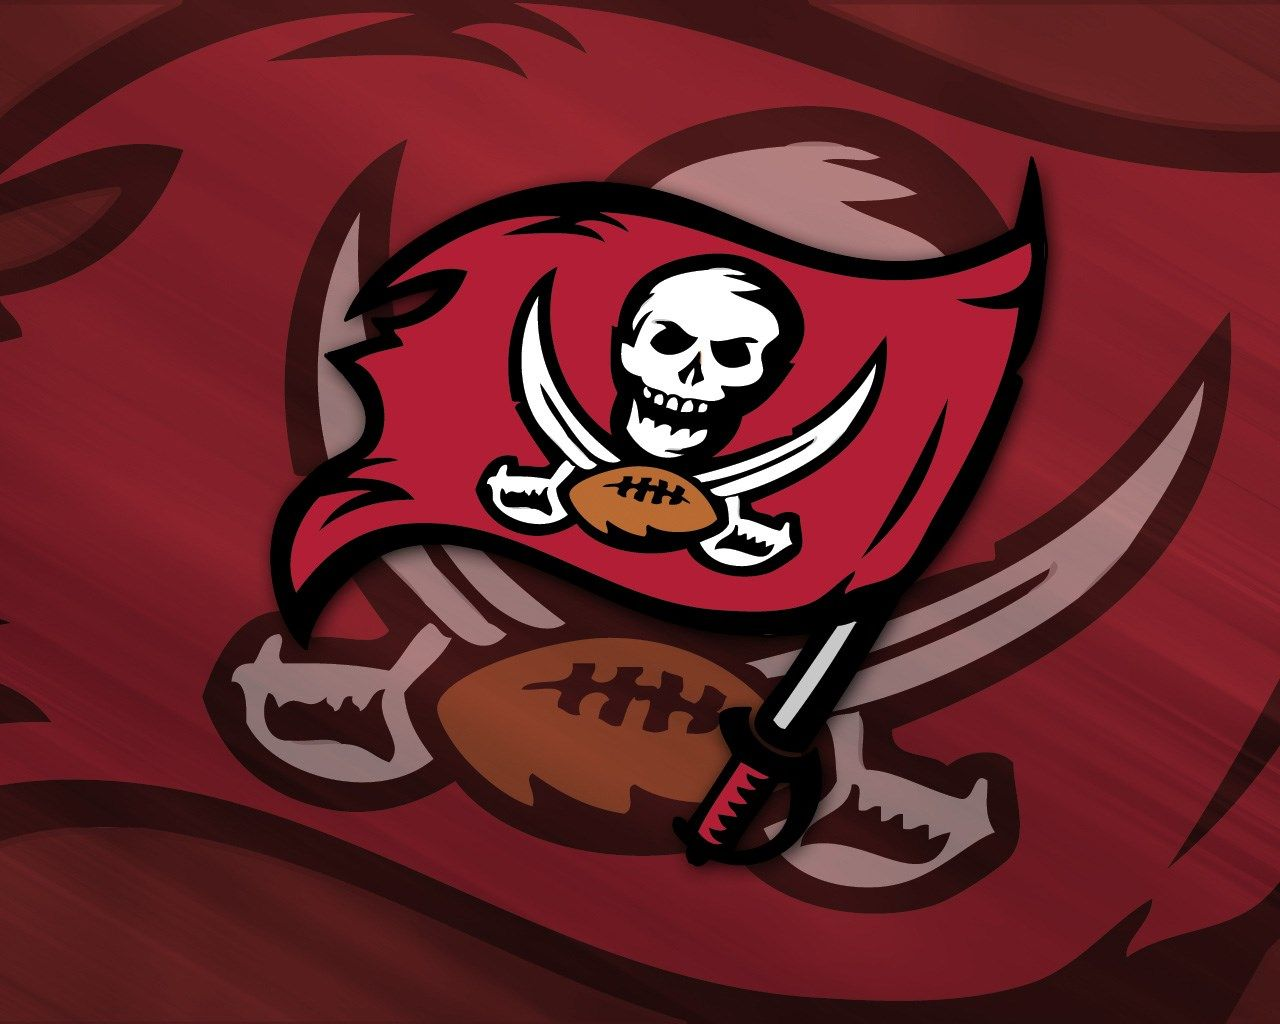 Hq Tampa Bay Buccaneers Wallpaper